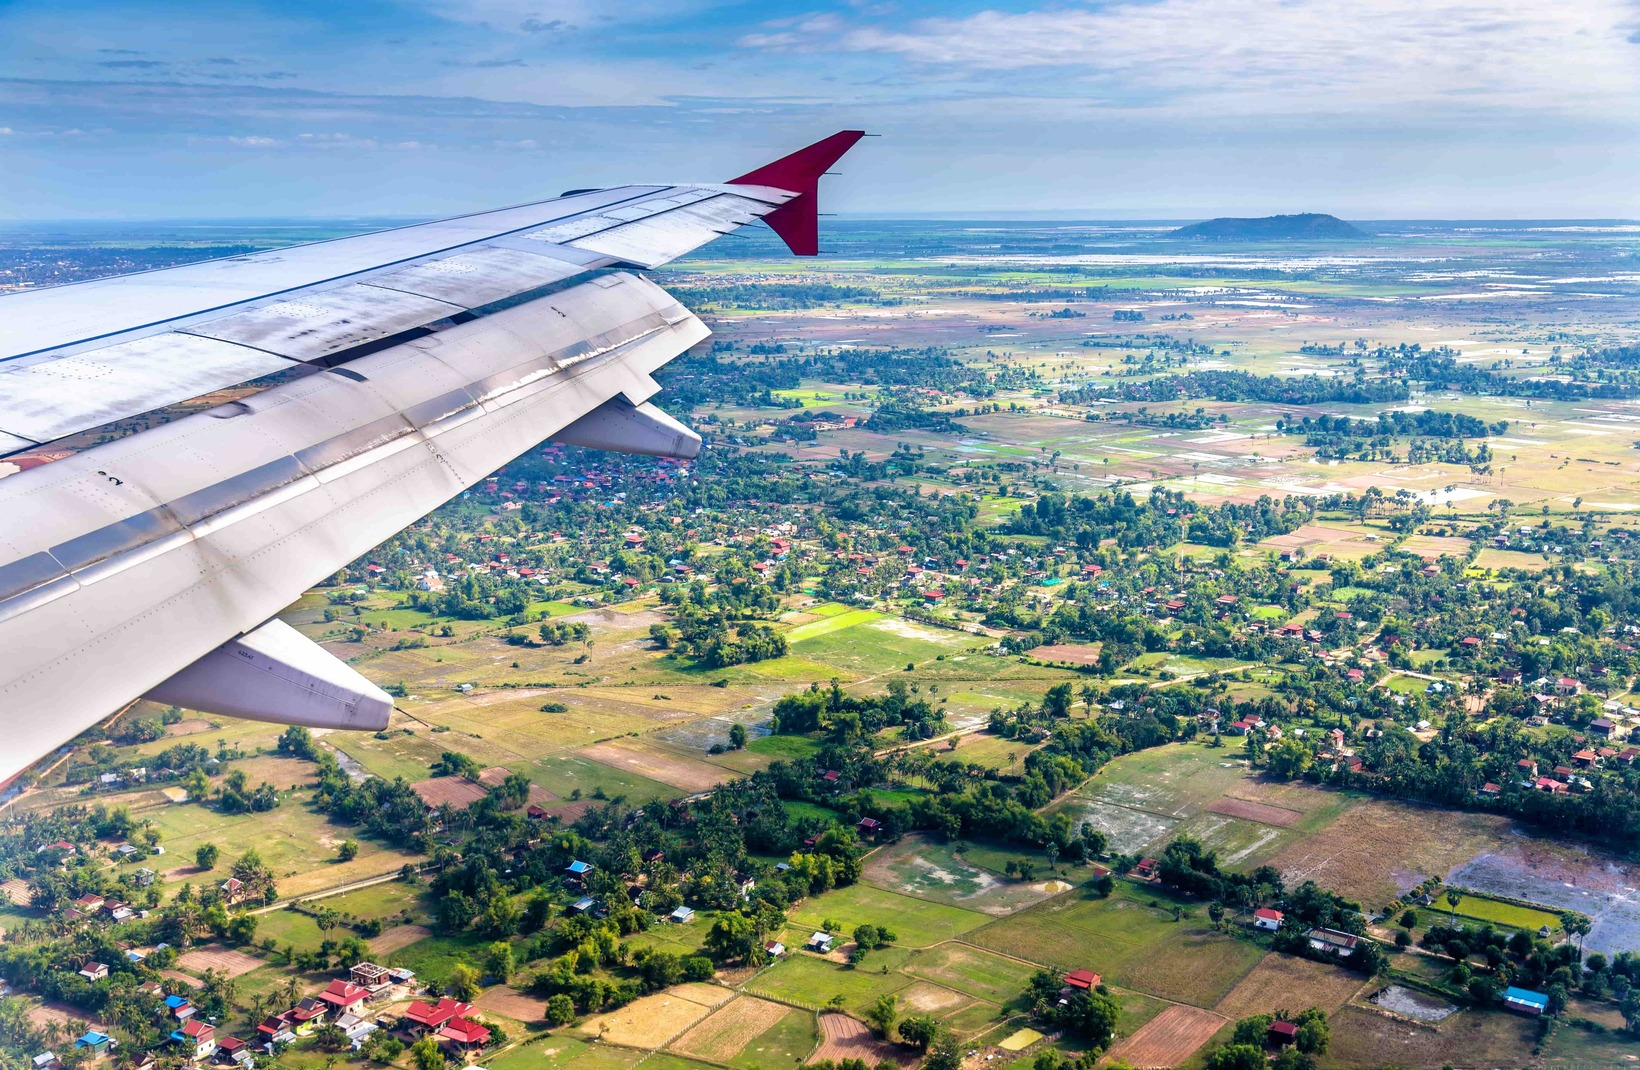 How to Get From Phnom Penh to Siem Reap (and vice versa)